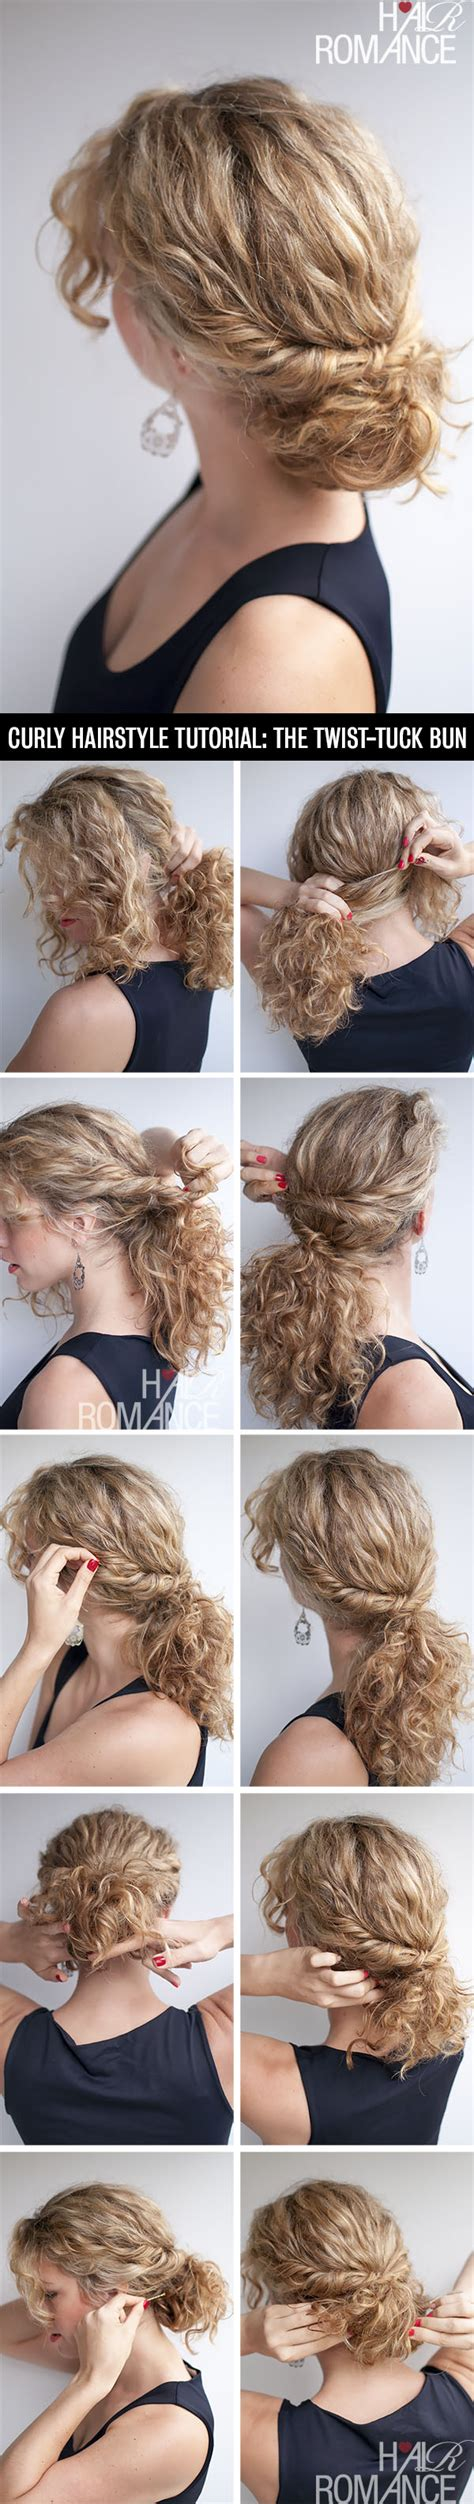 curling hair tutorial for med hair curly hairstyle tutorial the twist tuck bun hair romance